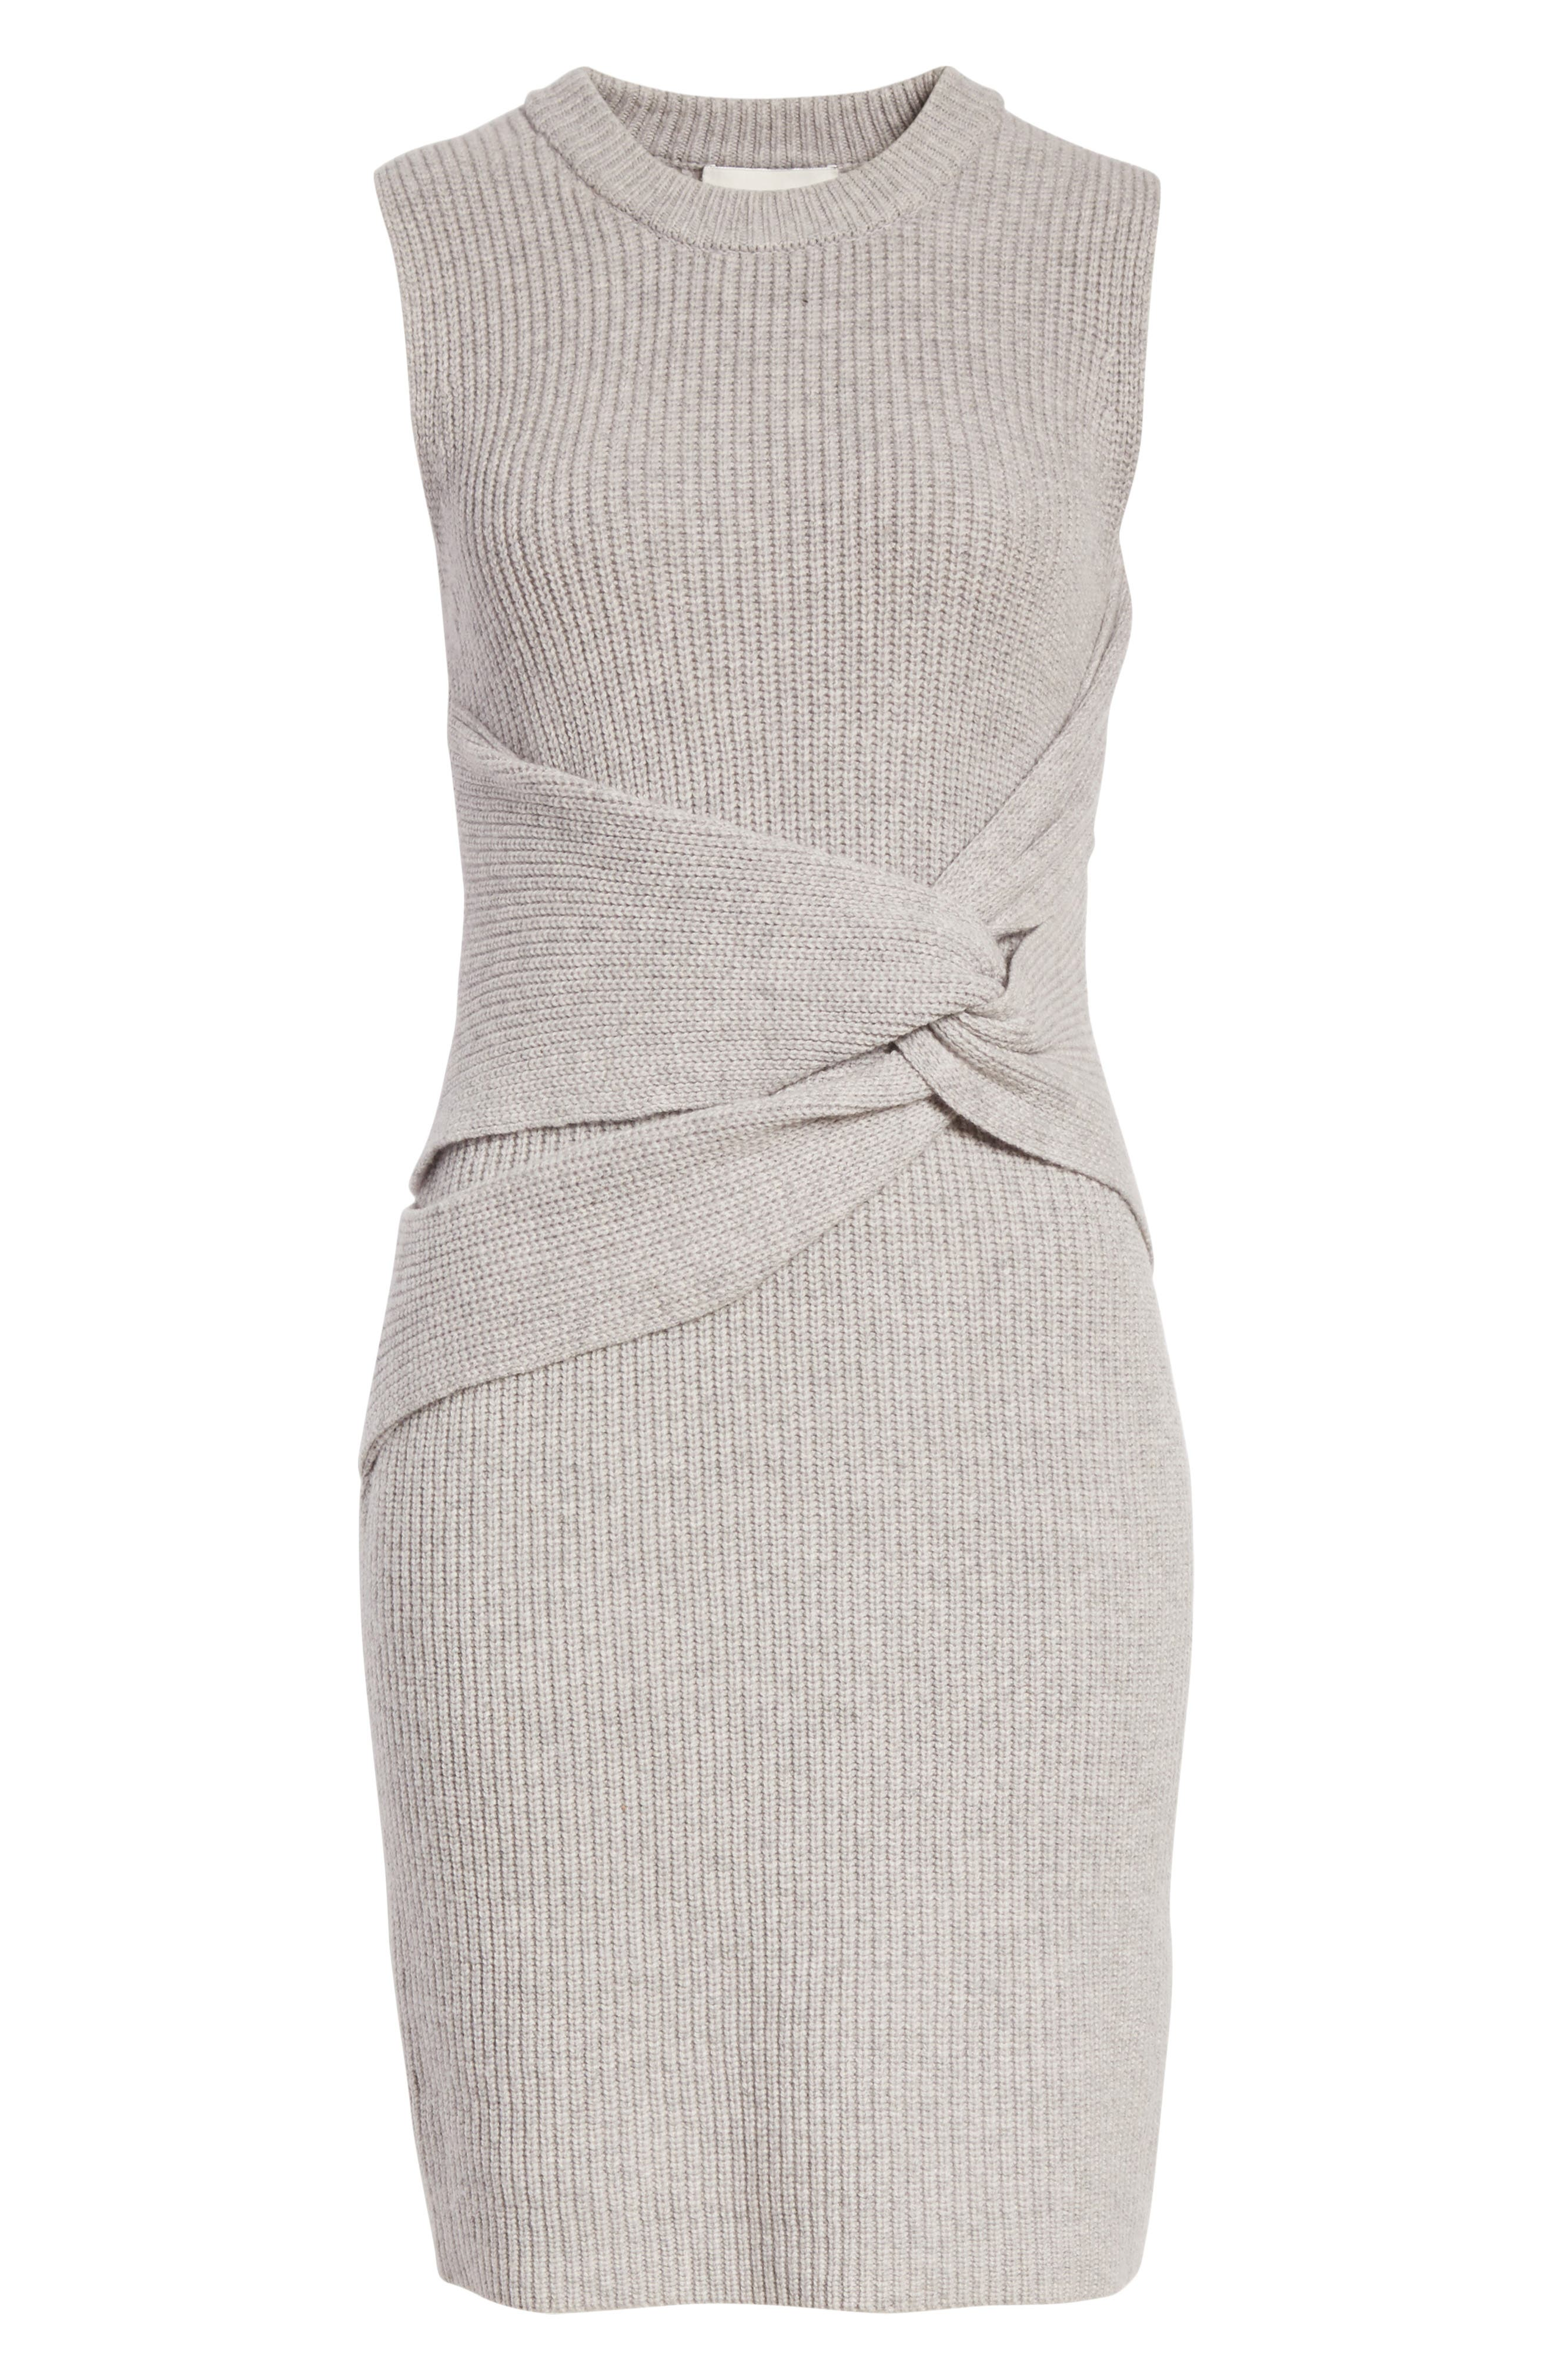 Twist Knit Dress,                             Alternate thumbnail 7, color,                             051